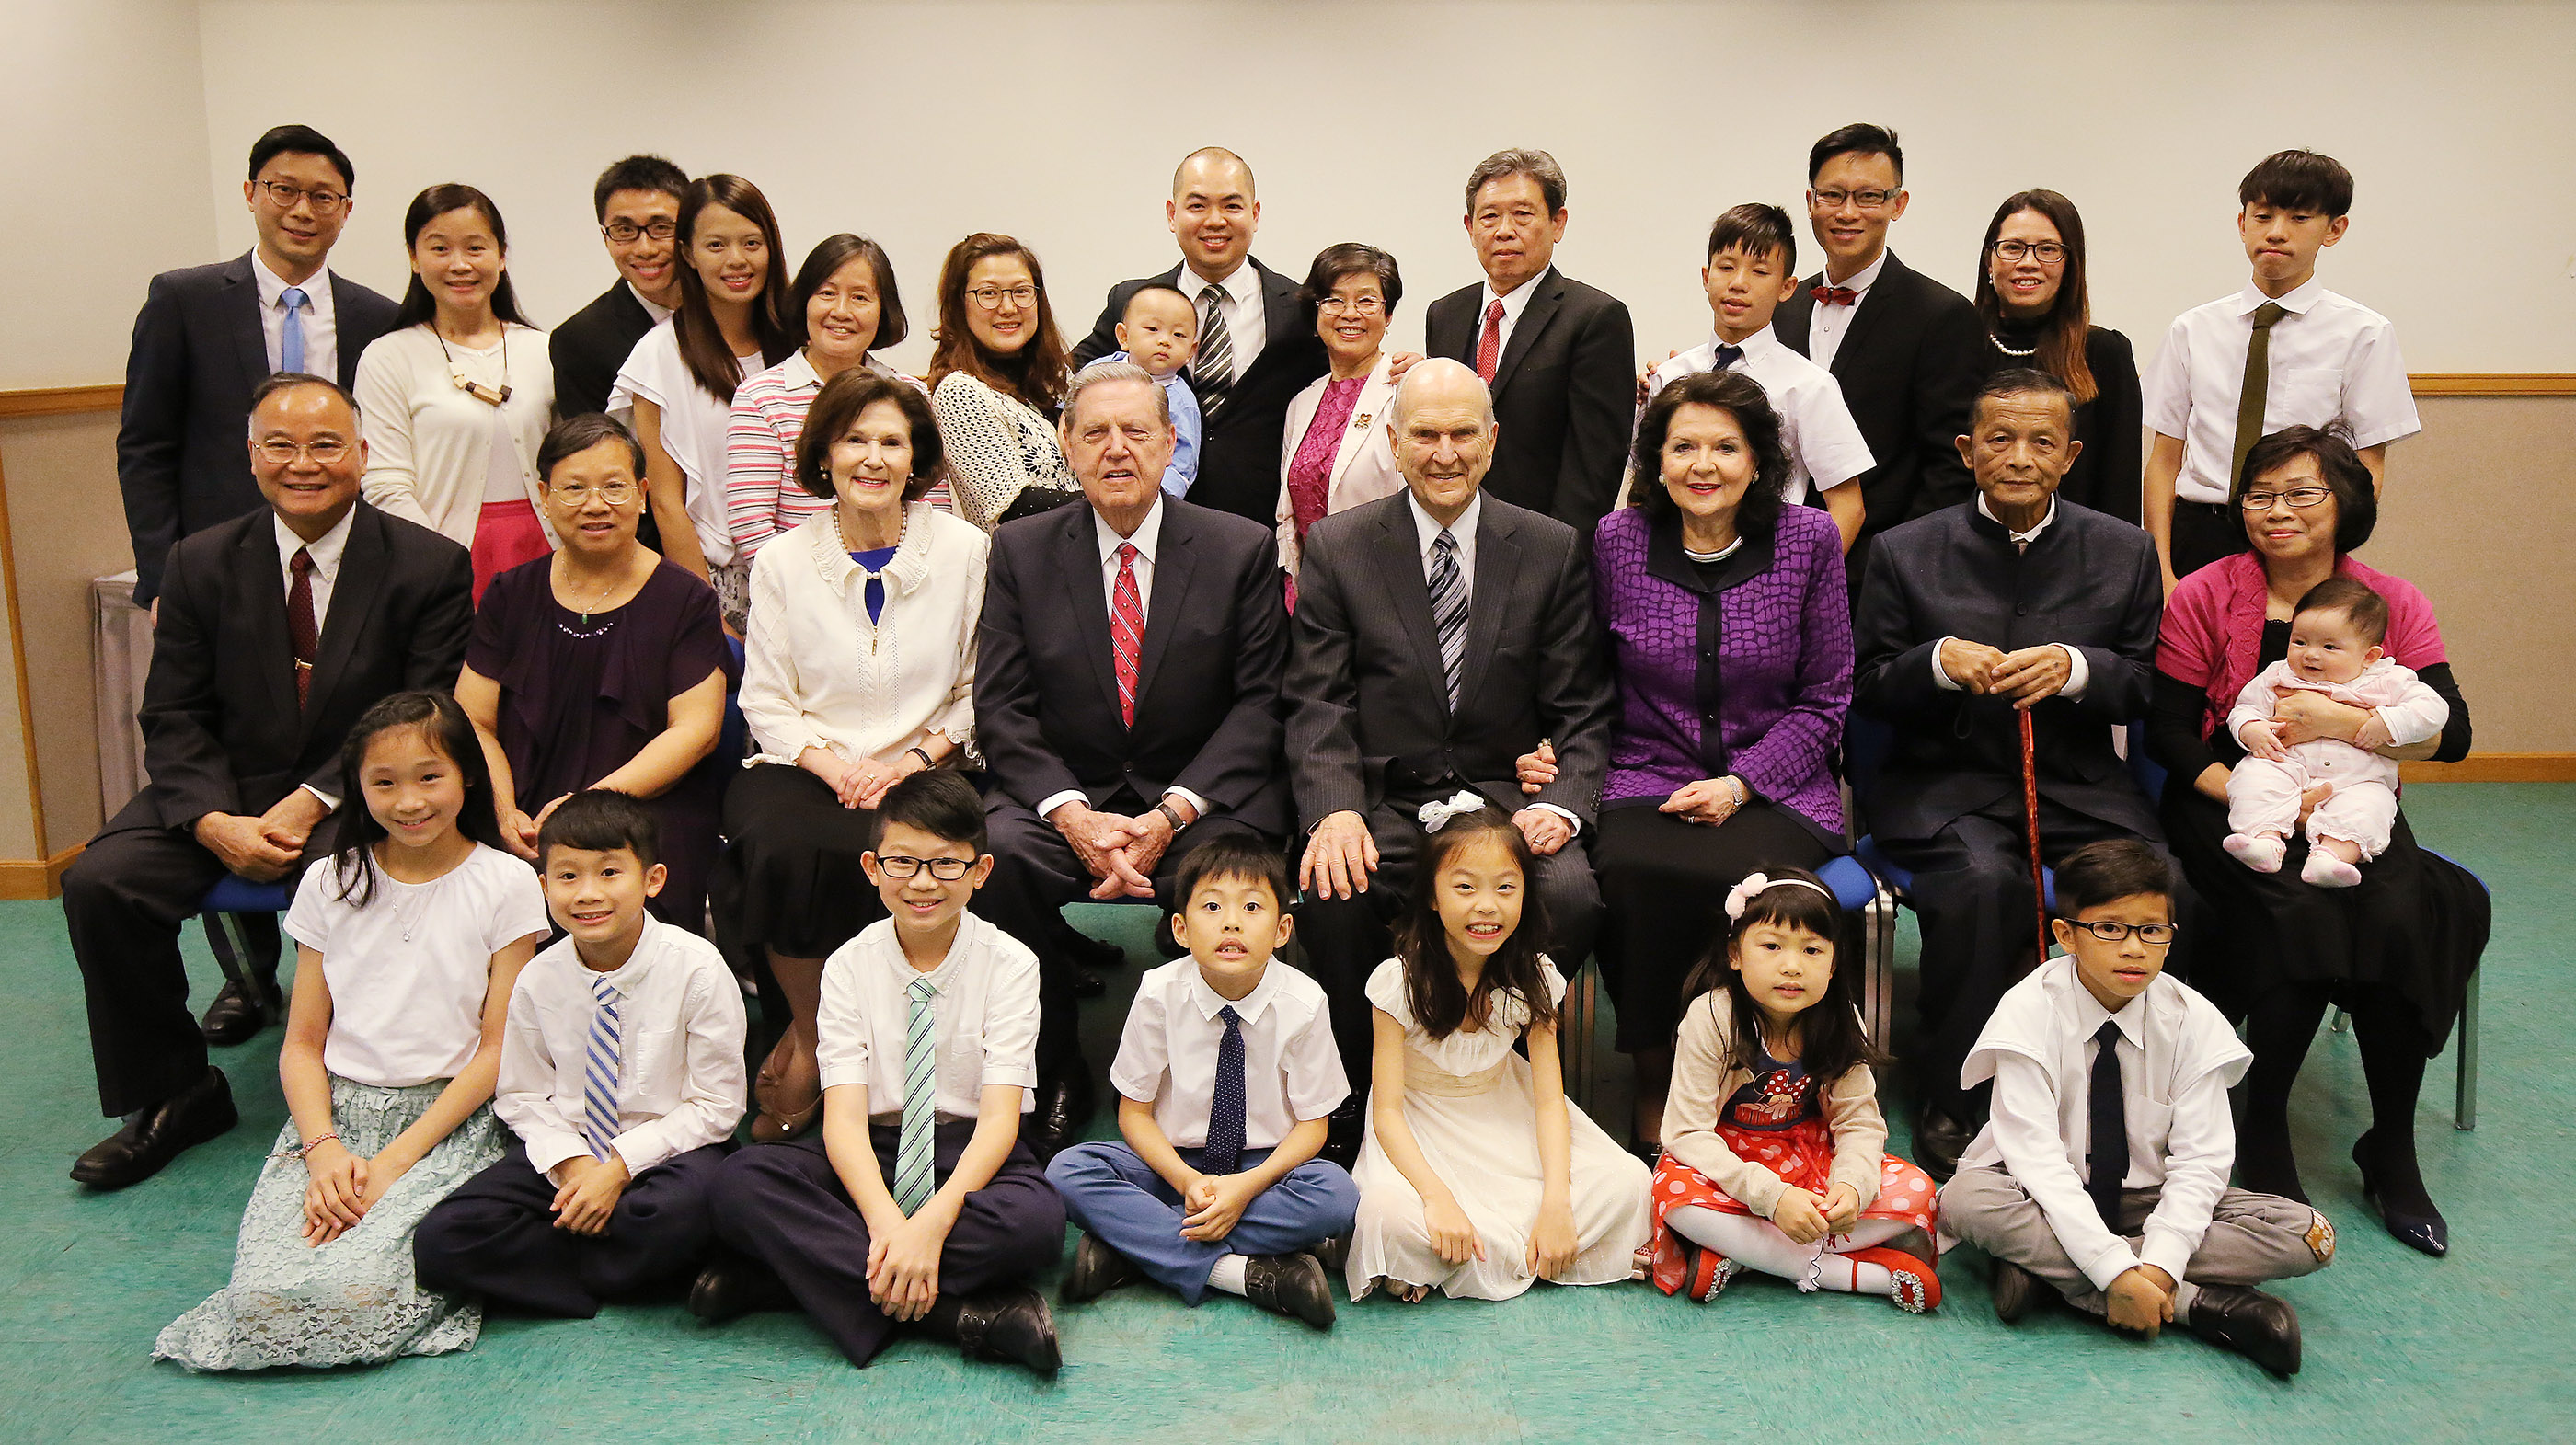 President Russell M. Nelson — along with his wife, Sister Wendy Nelson, and Elder Jeffrey R. Holland, Quorum of the Twelve Apostles, and his wife, Sister Patricia Holland — pose for a photo with local multi-generational Church members in Hong Kong on Saturday, April 21, 2018.